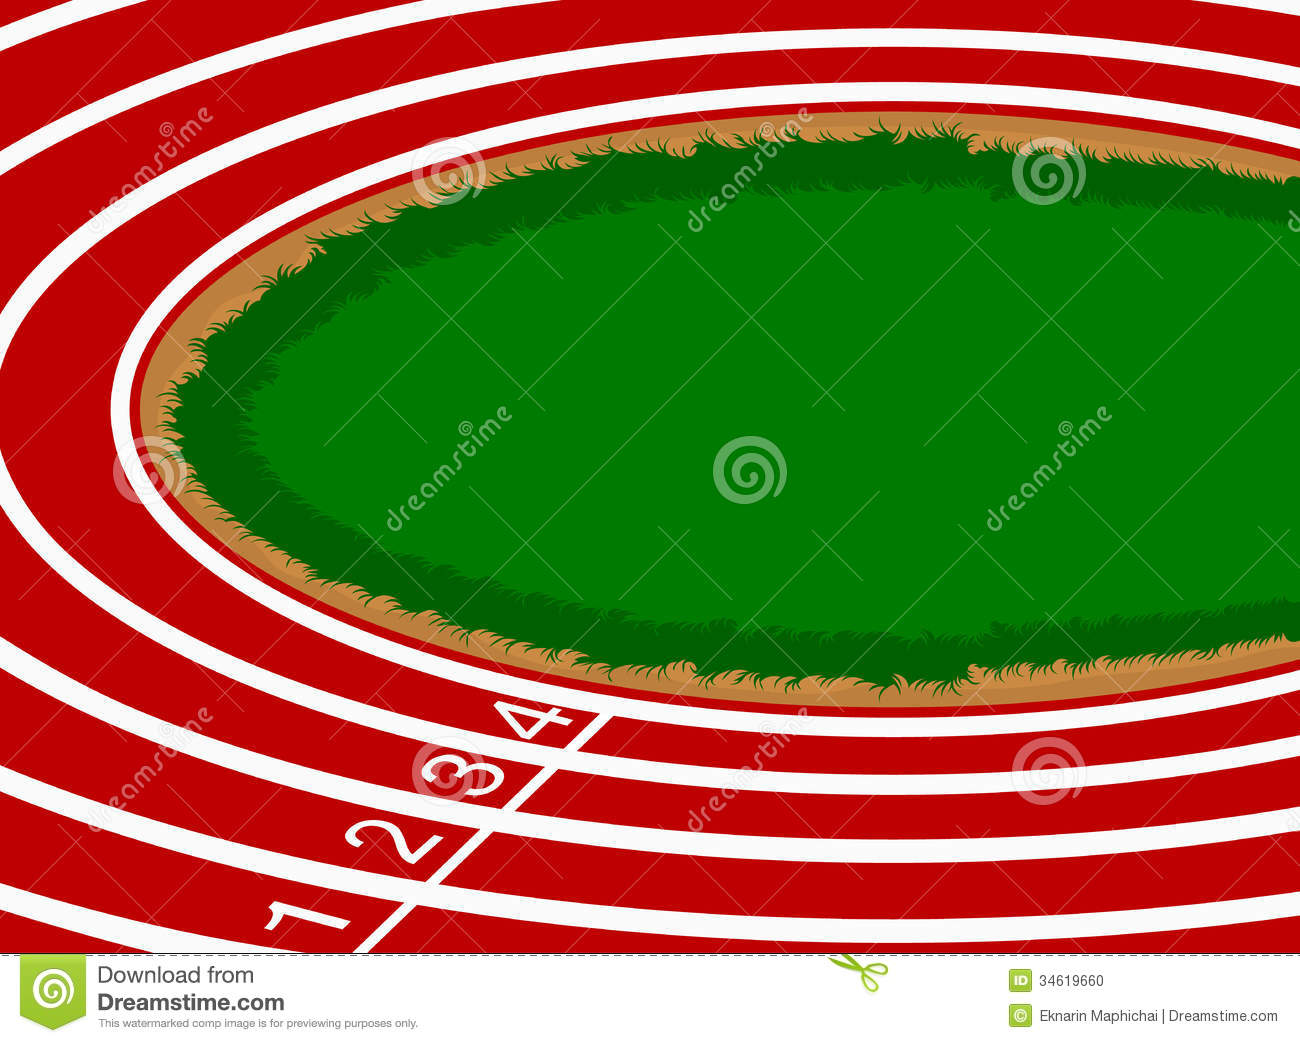 Racetrack Stock Photo  Race Track Wallpaper Clipart